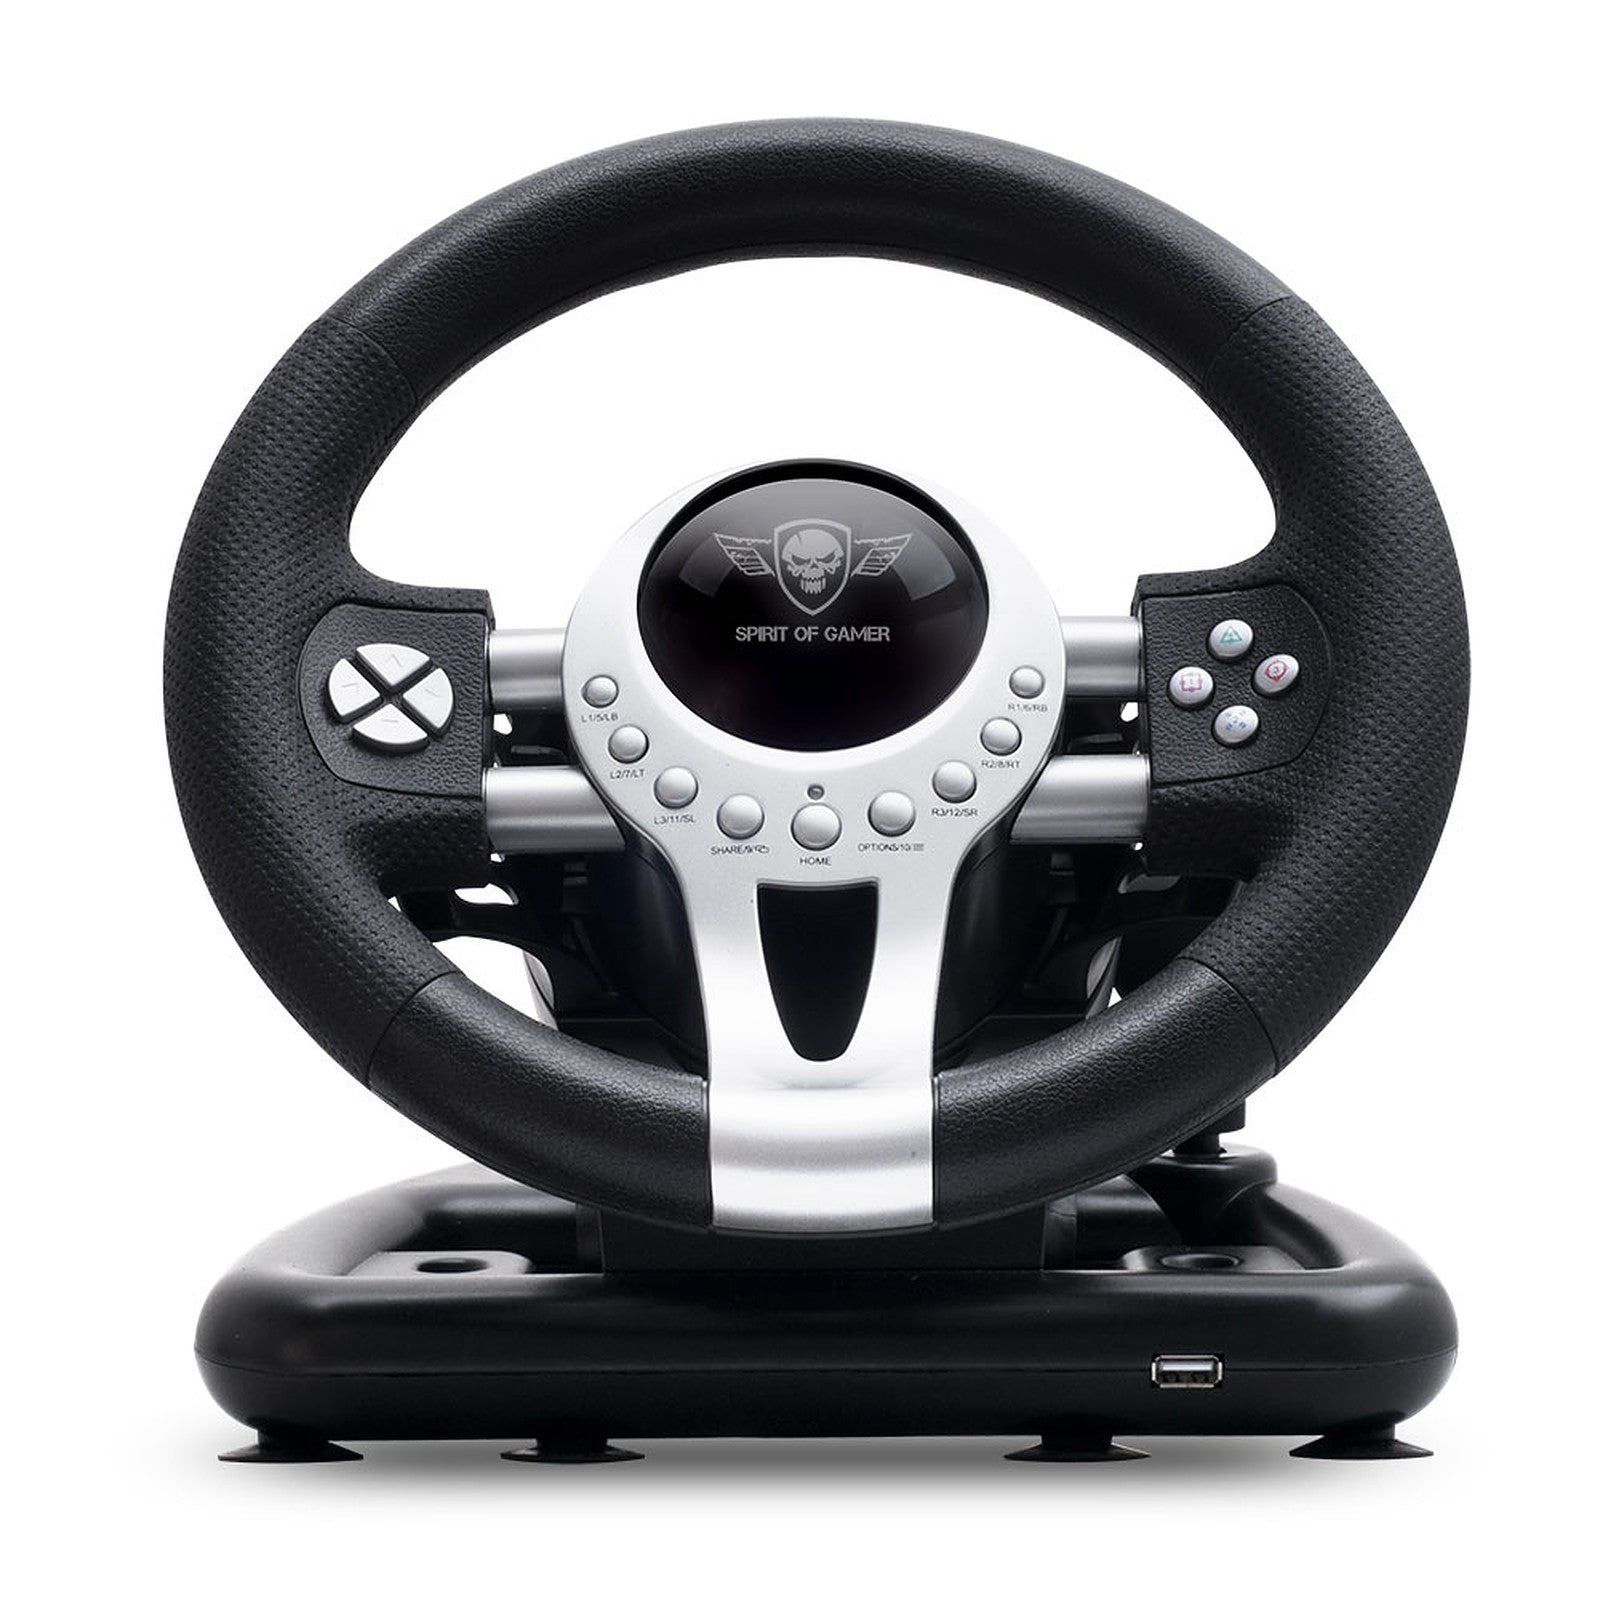 Spirit of Gamer Race Wheel Pro 2 - Ensemble volant + pédalier + levier de vitesse (compatible PC / PlayStation 2 / PlayStation 3)